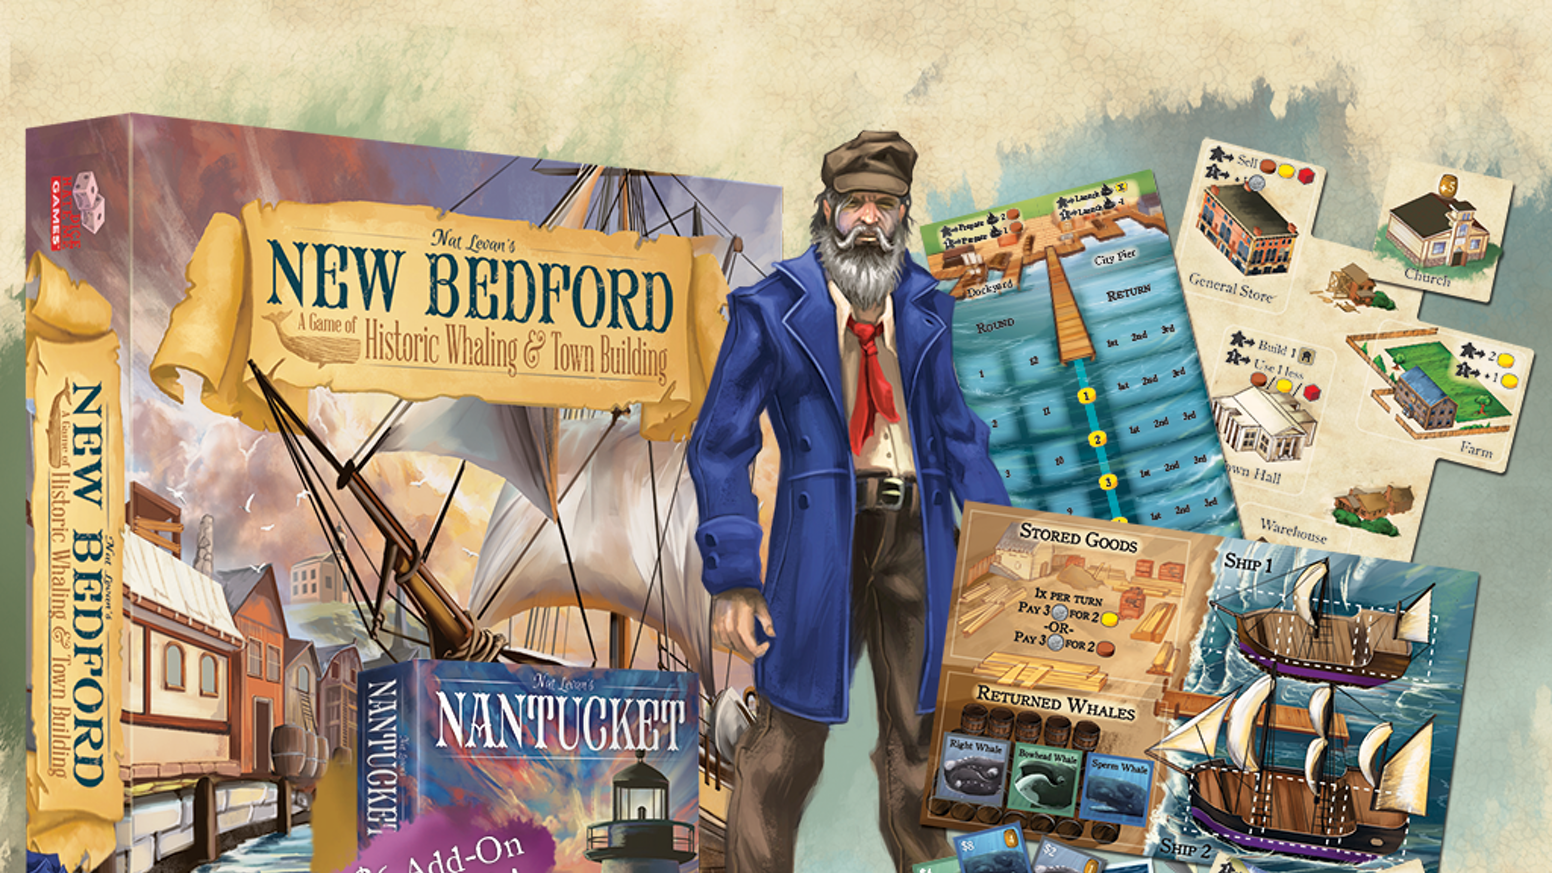 Manage fleet and town in this Euro-style board game for 1-5 players in the era of Moby Dick and historic New Bedford, Massachusetts.